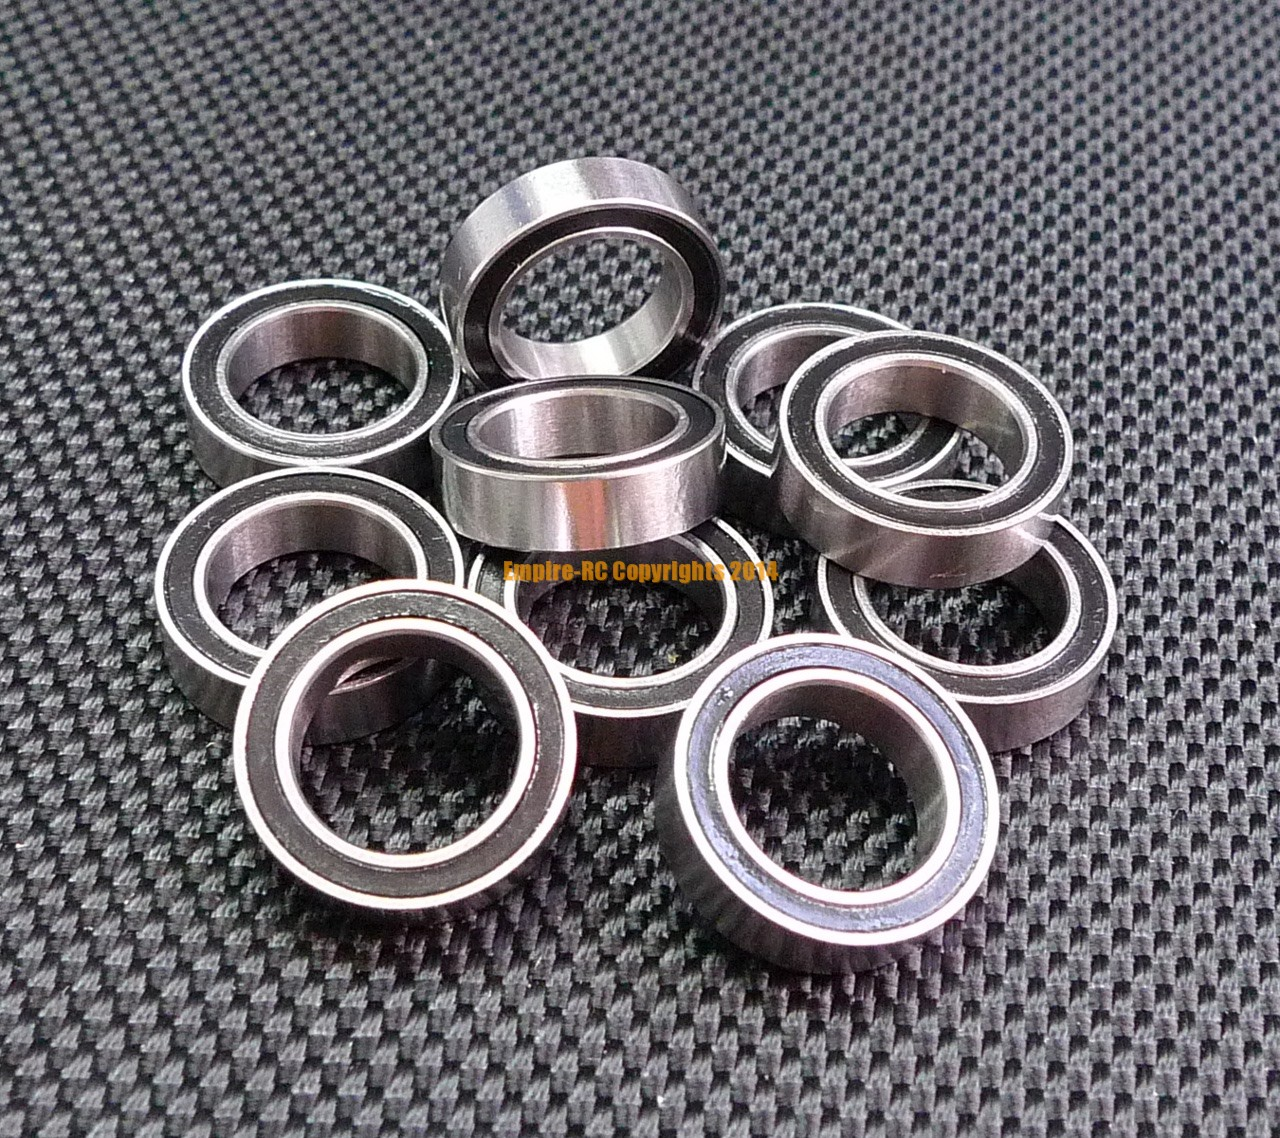 6703-2RS 17x23x4 Ball Bearings Black Rubber Sealed Bearing 5 PCS